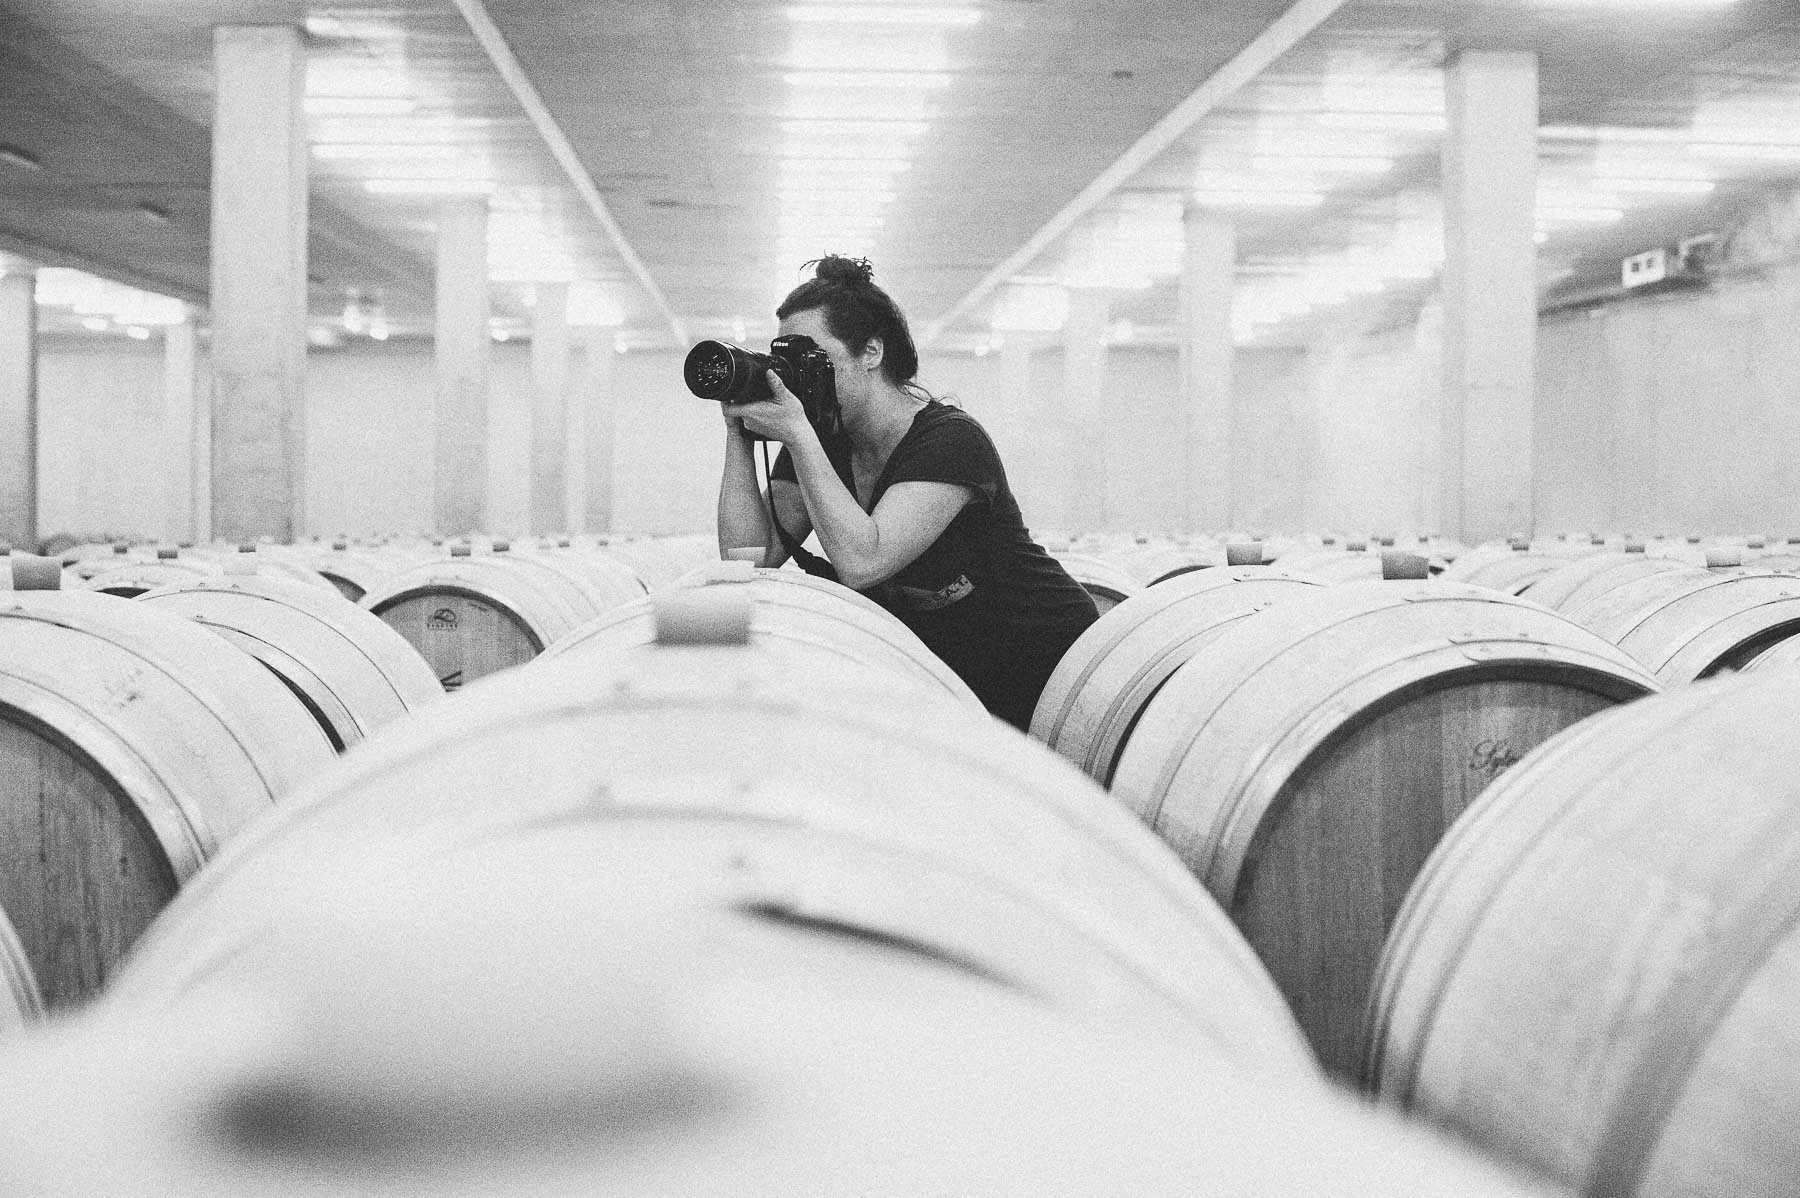 Kristen Penoyer, a Southeast food photographer shoots at a winery in Millahue, Chile.